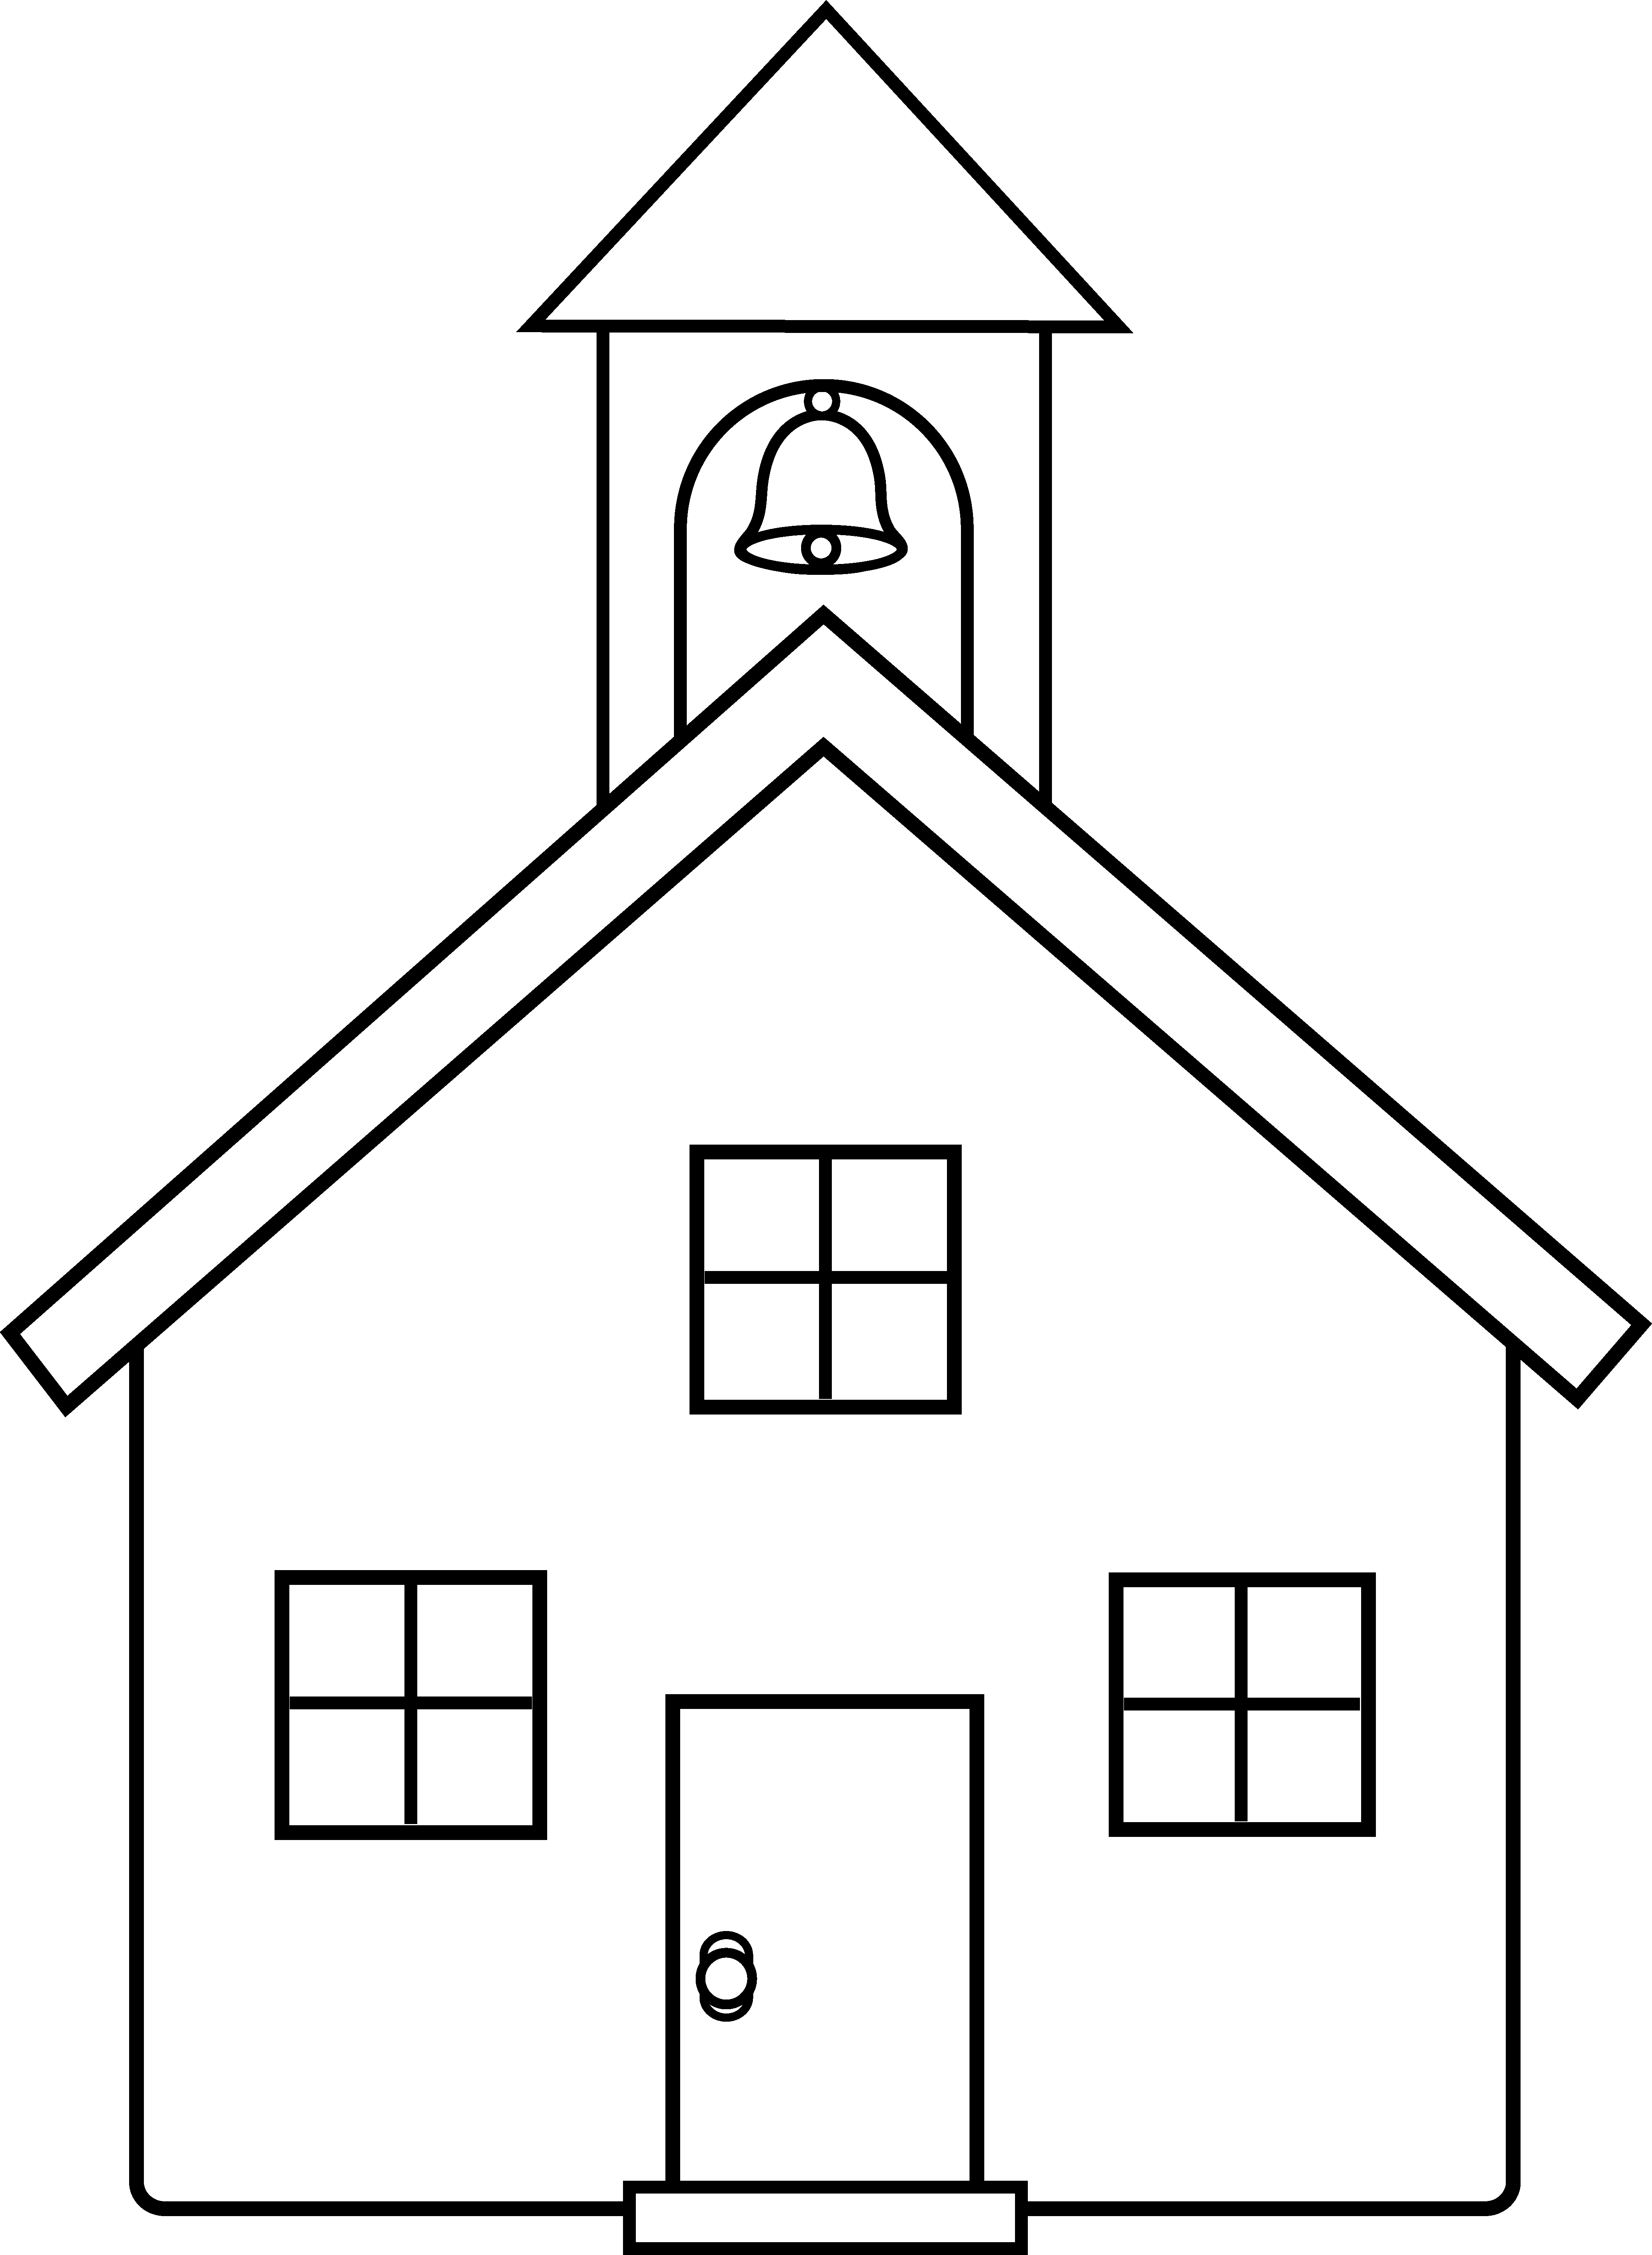 Schoolhouse vector. School house line art